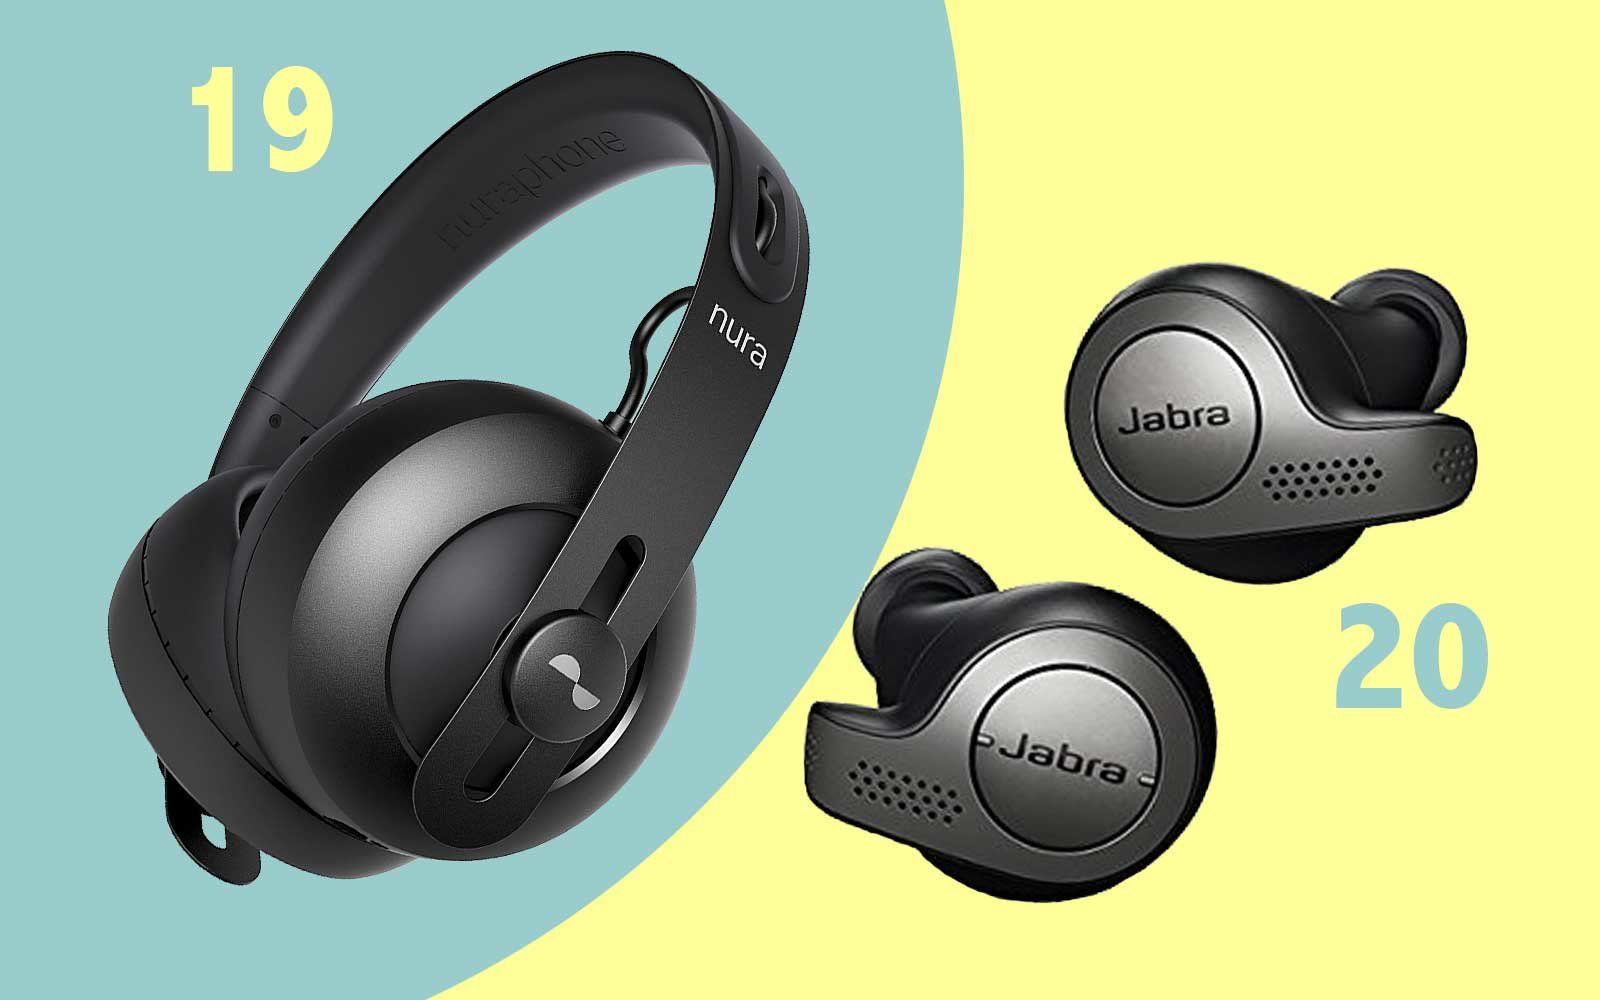 Noise Canceing headphones with microphone, from Jabra and Nuraphone